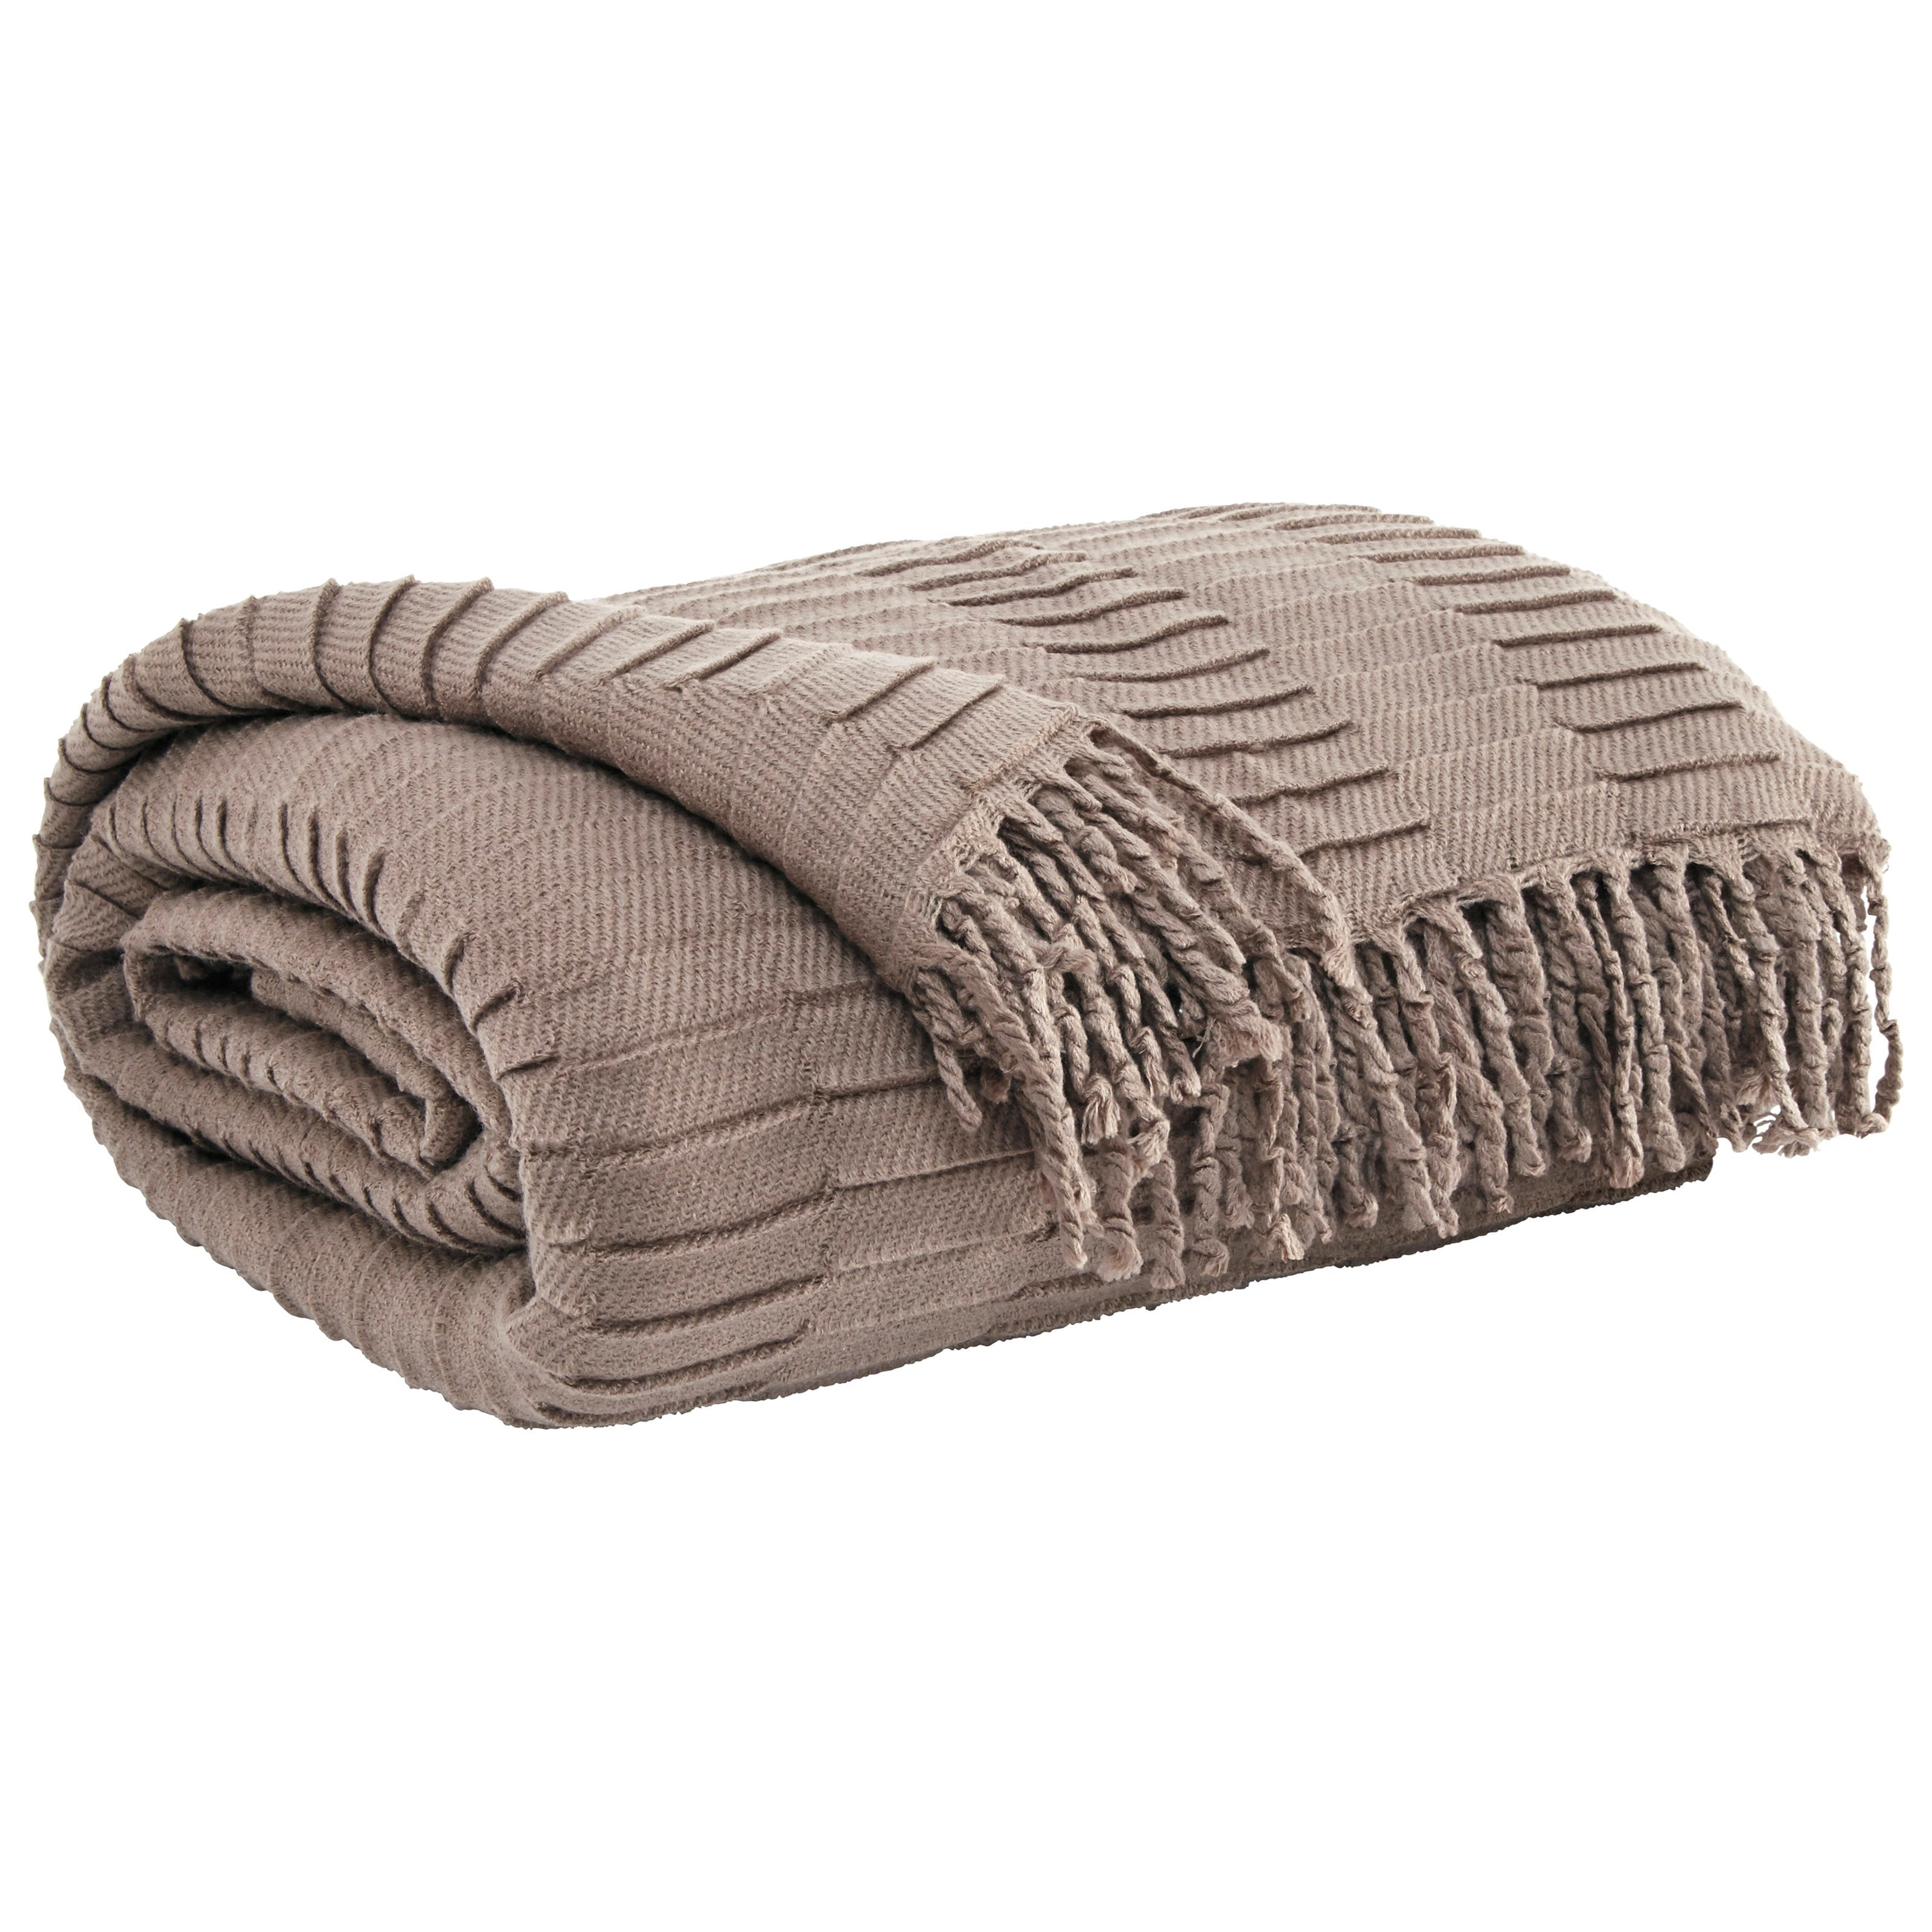 Throws Mendez - Taupe Throw by Signature Design by Ashley at Value City Furniture